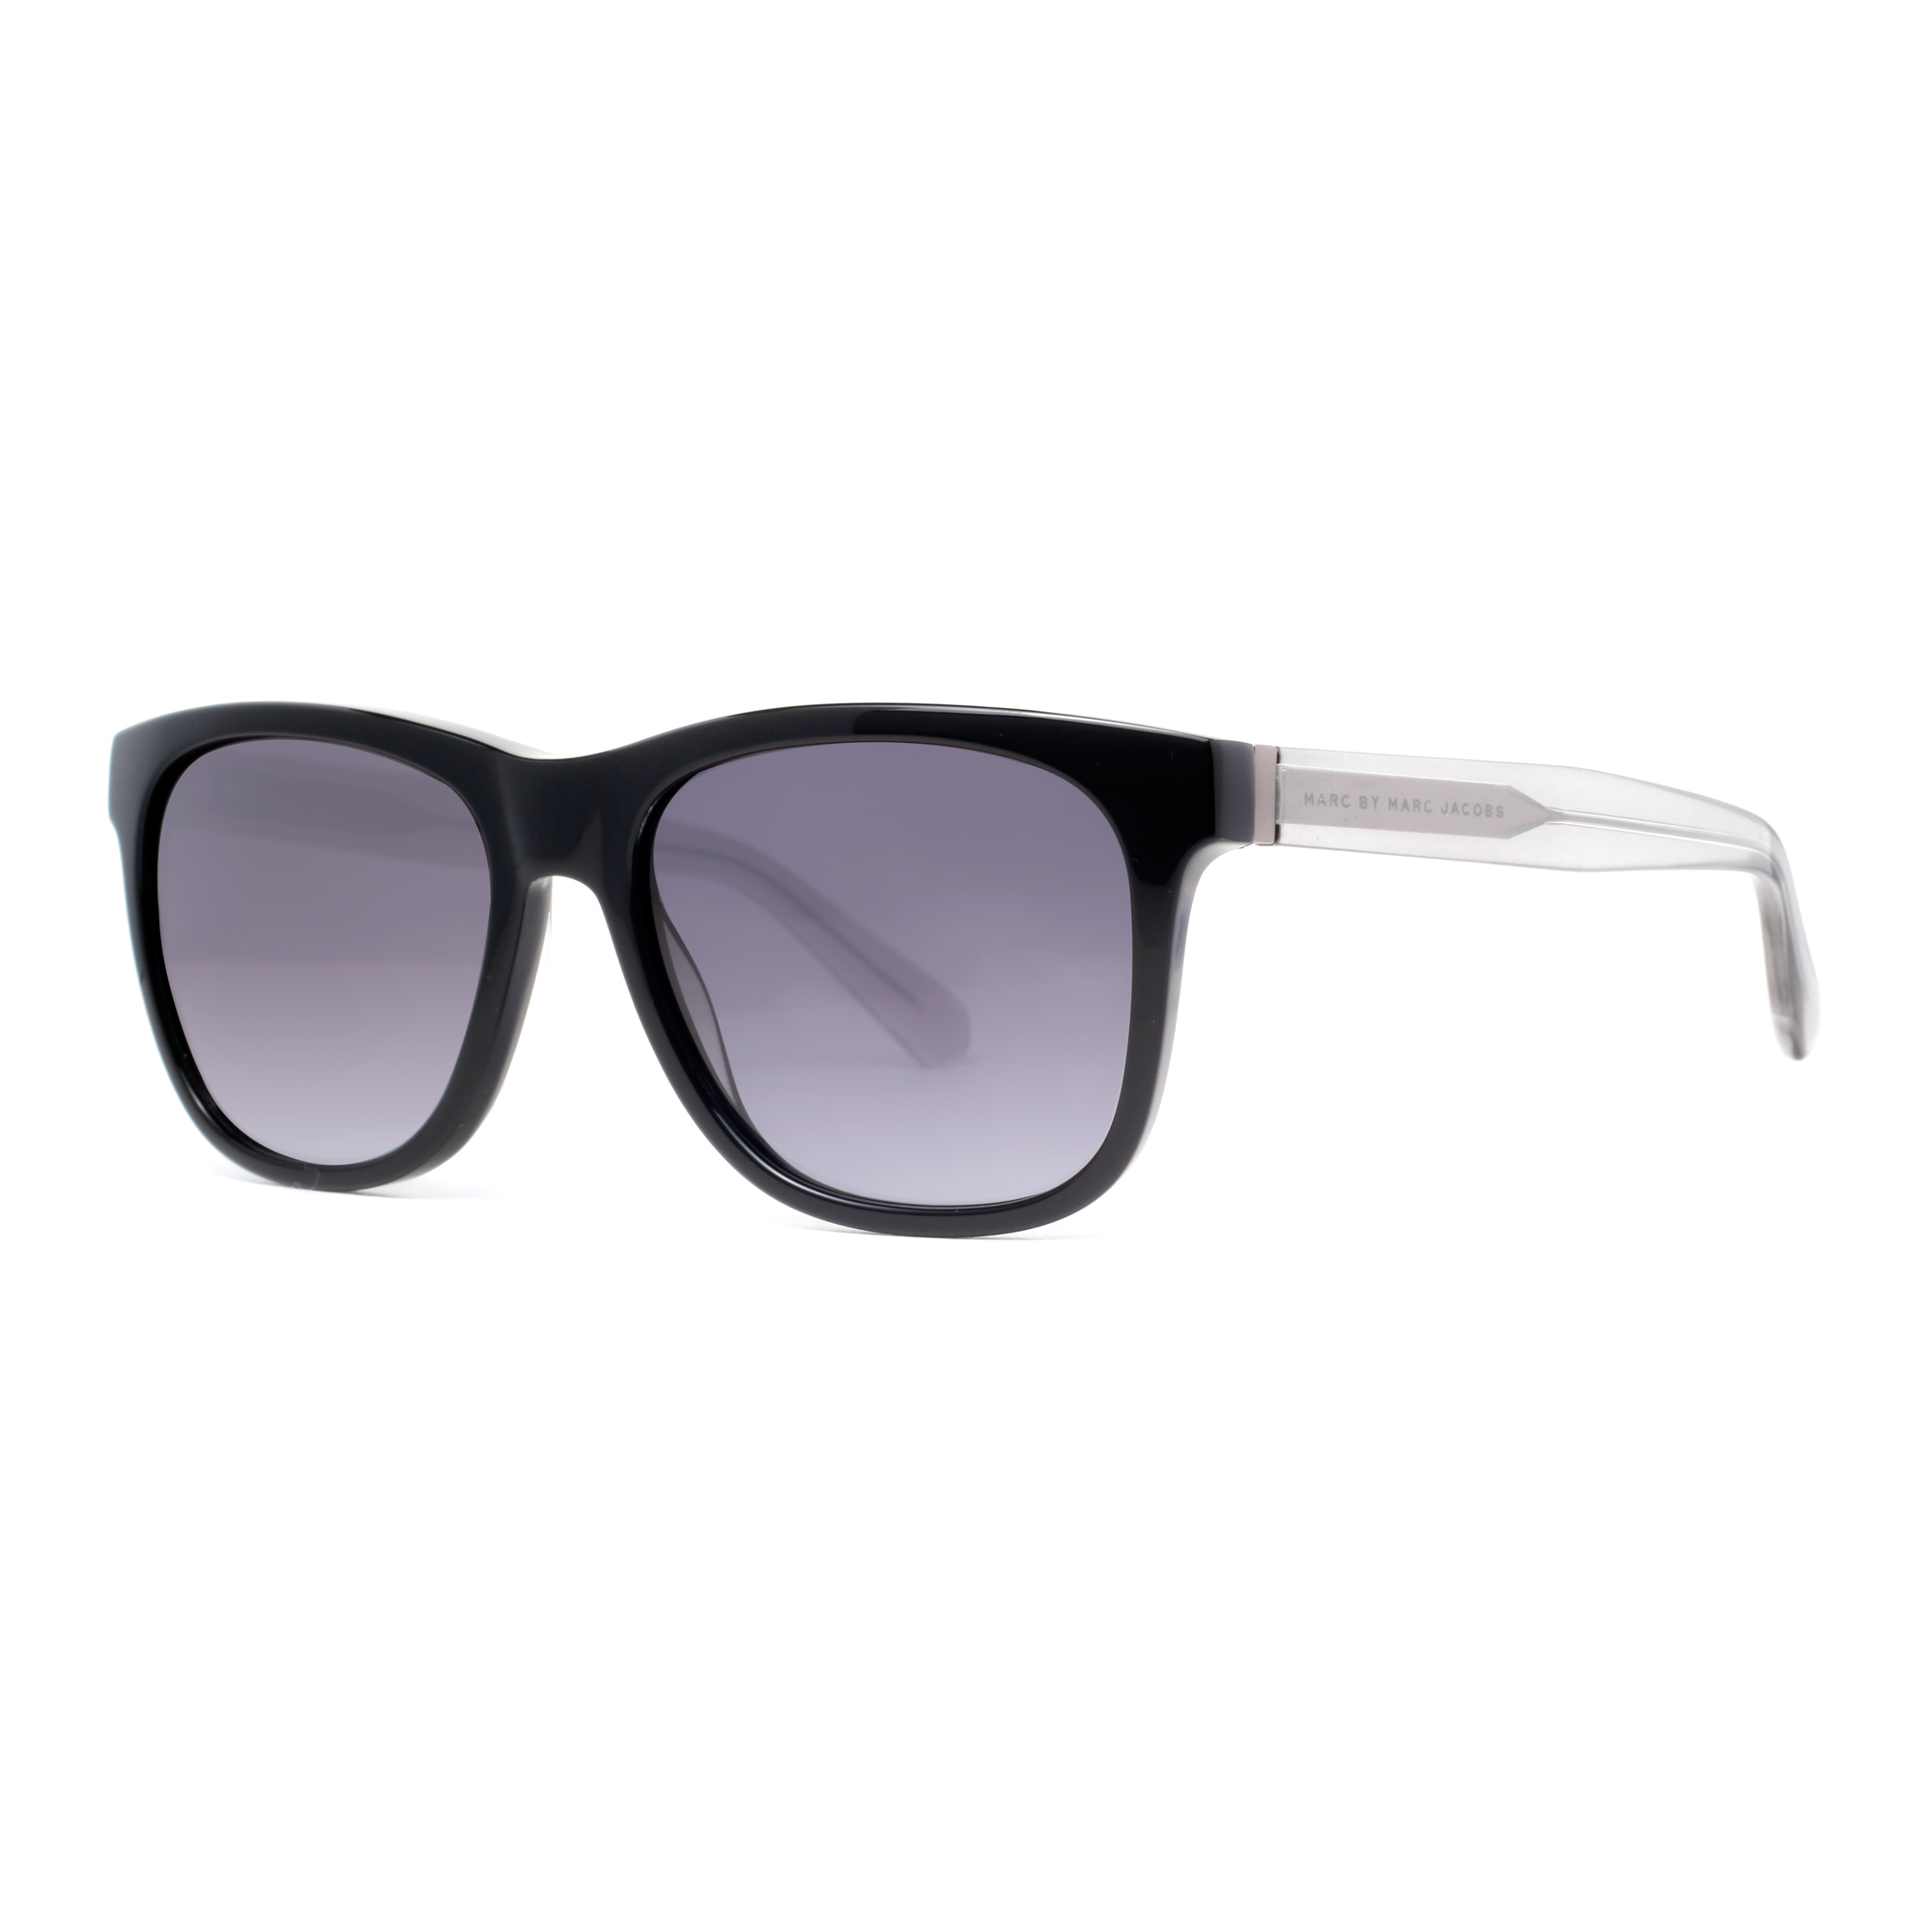 Marc By Marc Jacobs Mmj 360 N S Unisex Square Sunglasses